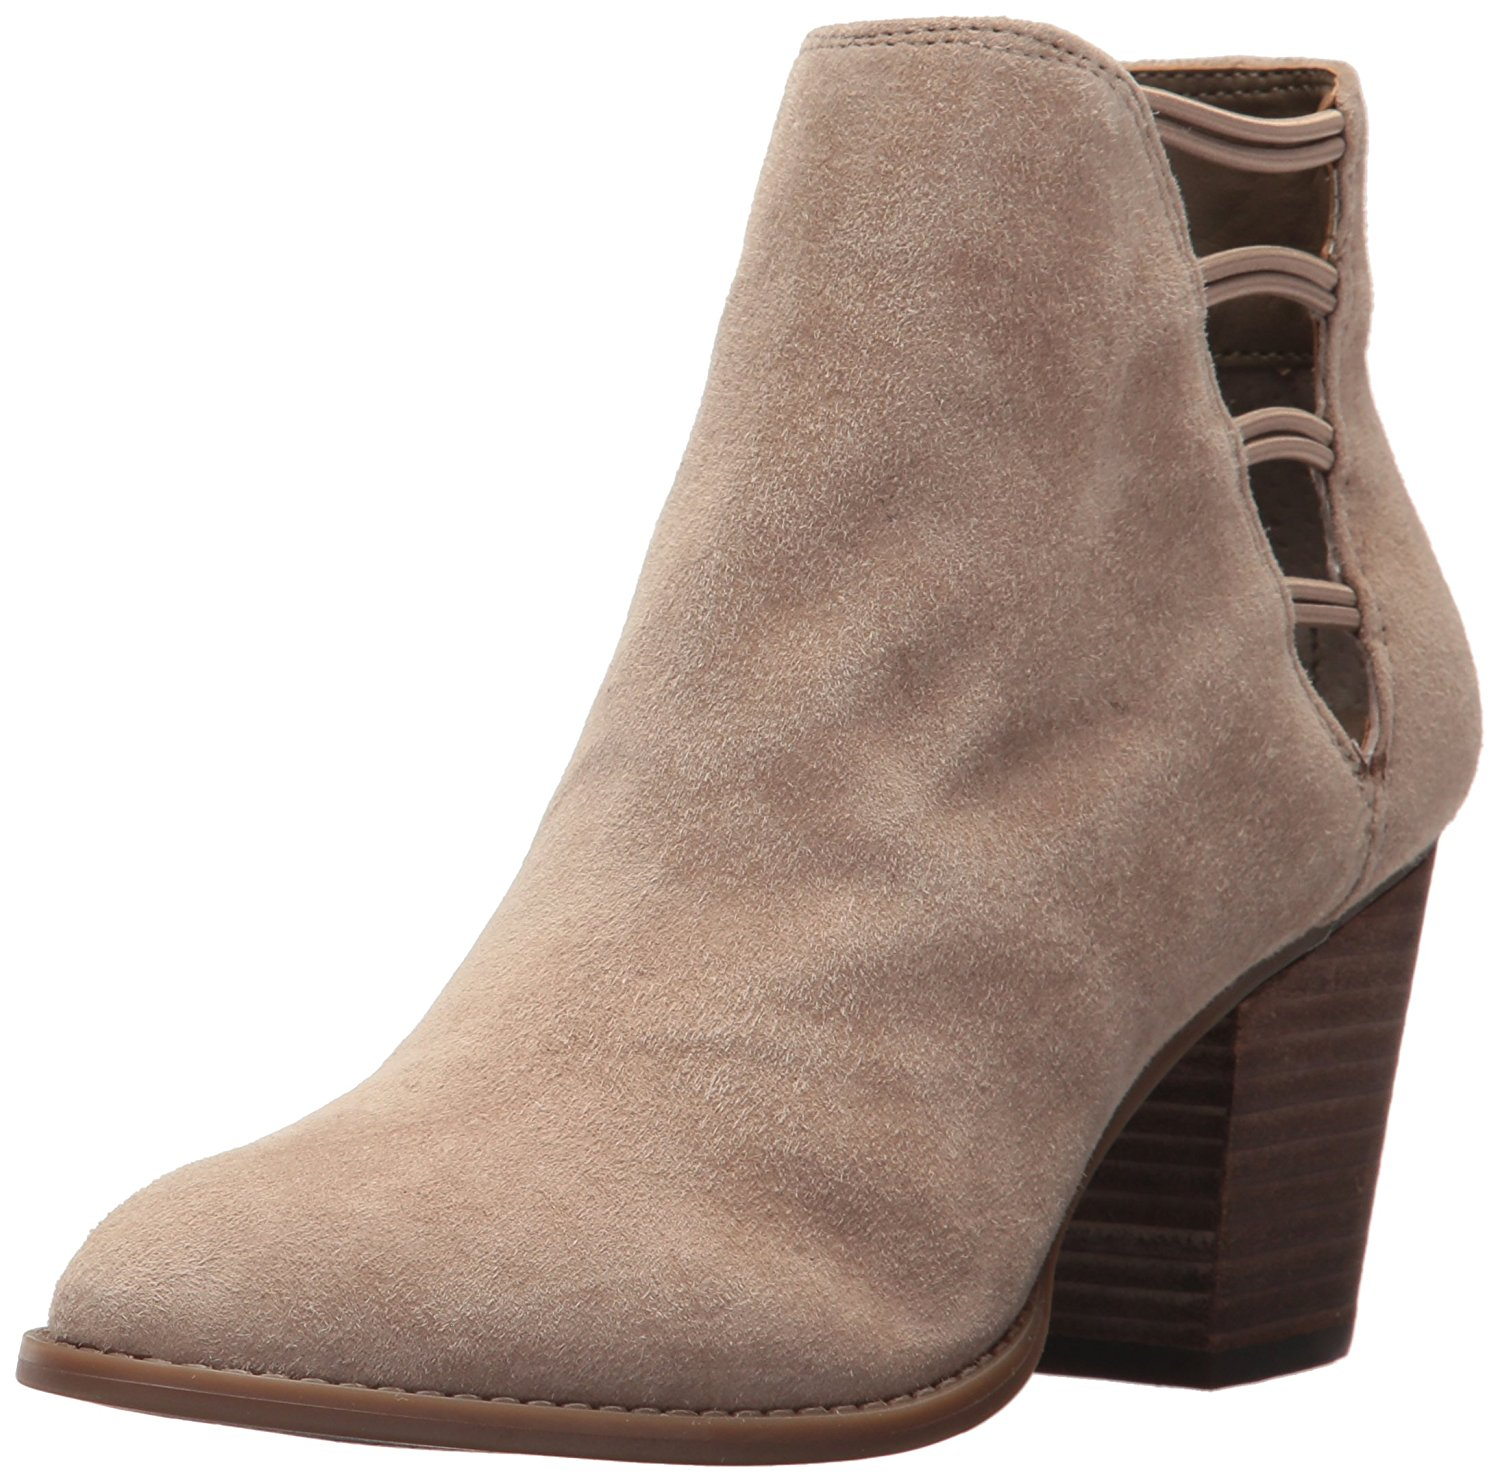 Women's Yasma Ankle Boot